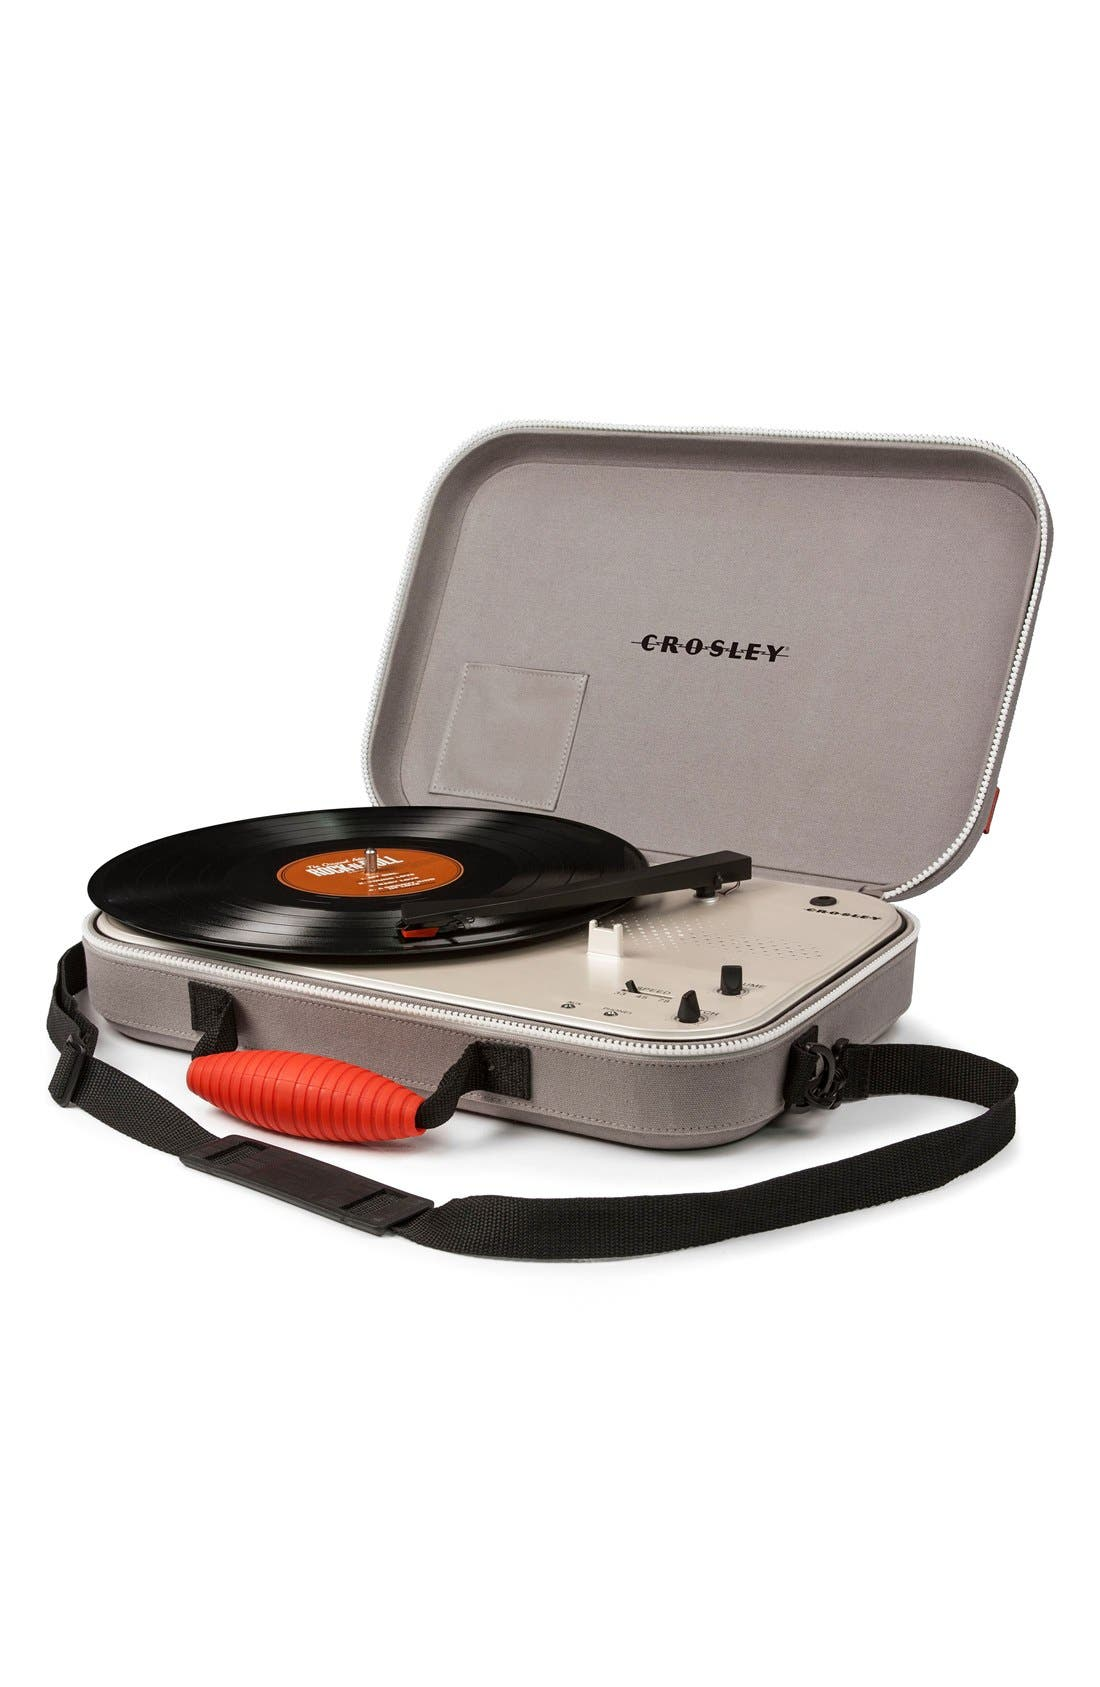 CROSLEY RADIO Messenger Portable Turntable